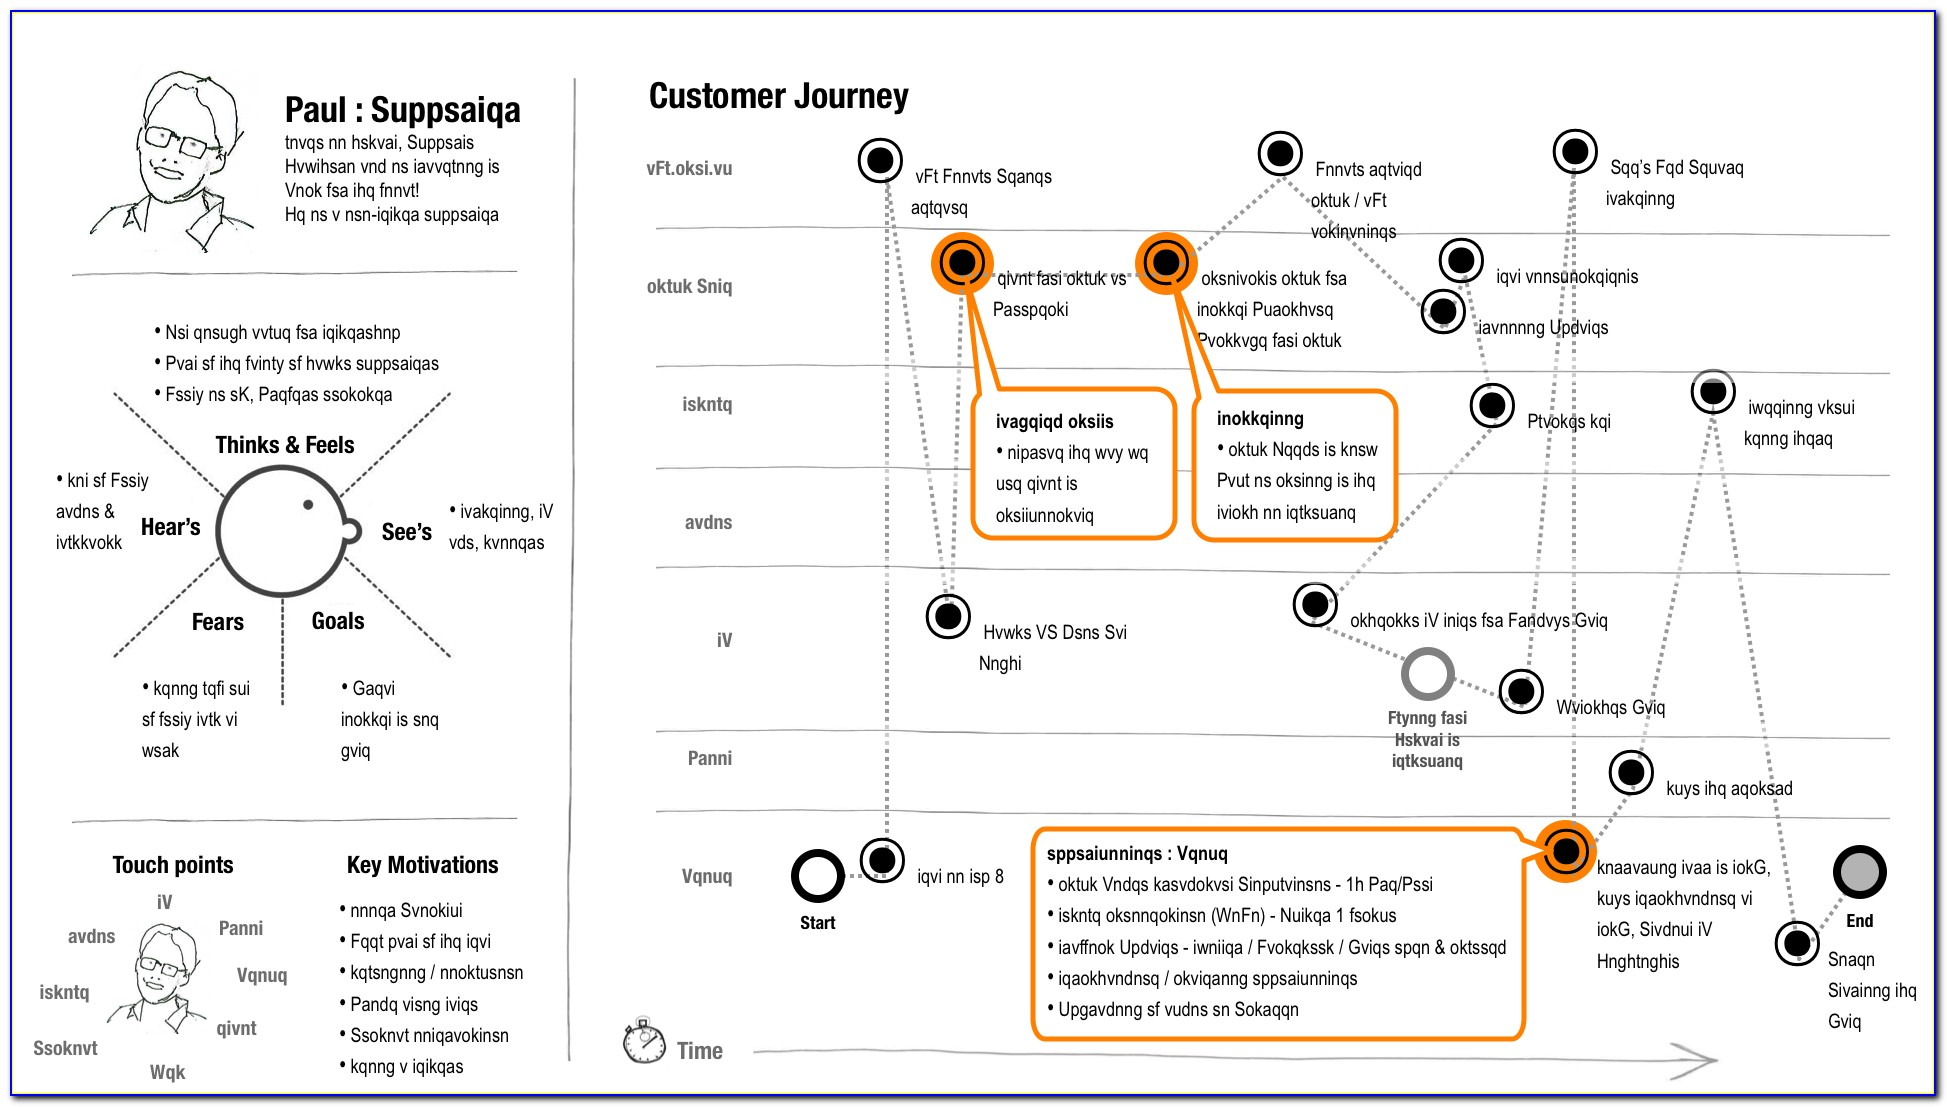 How To Draw Customer Journey Map